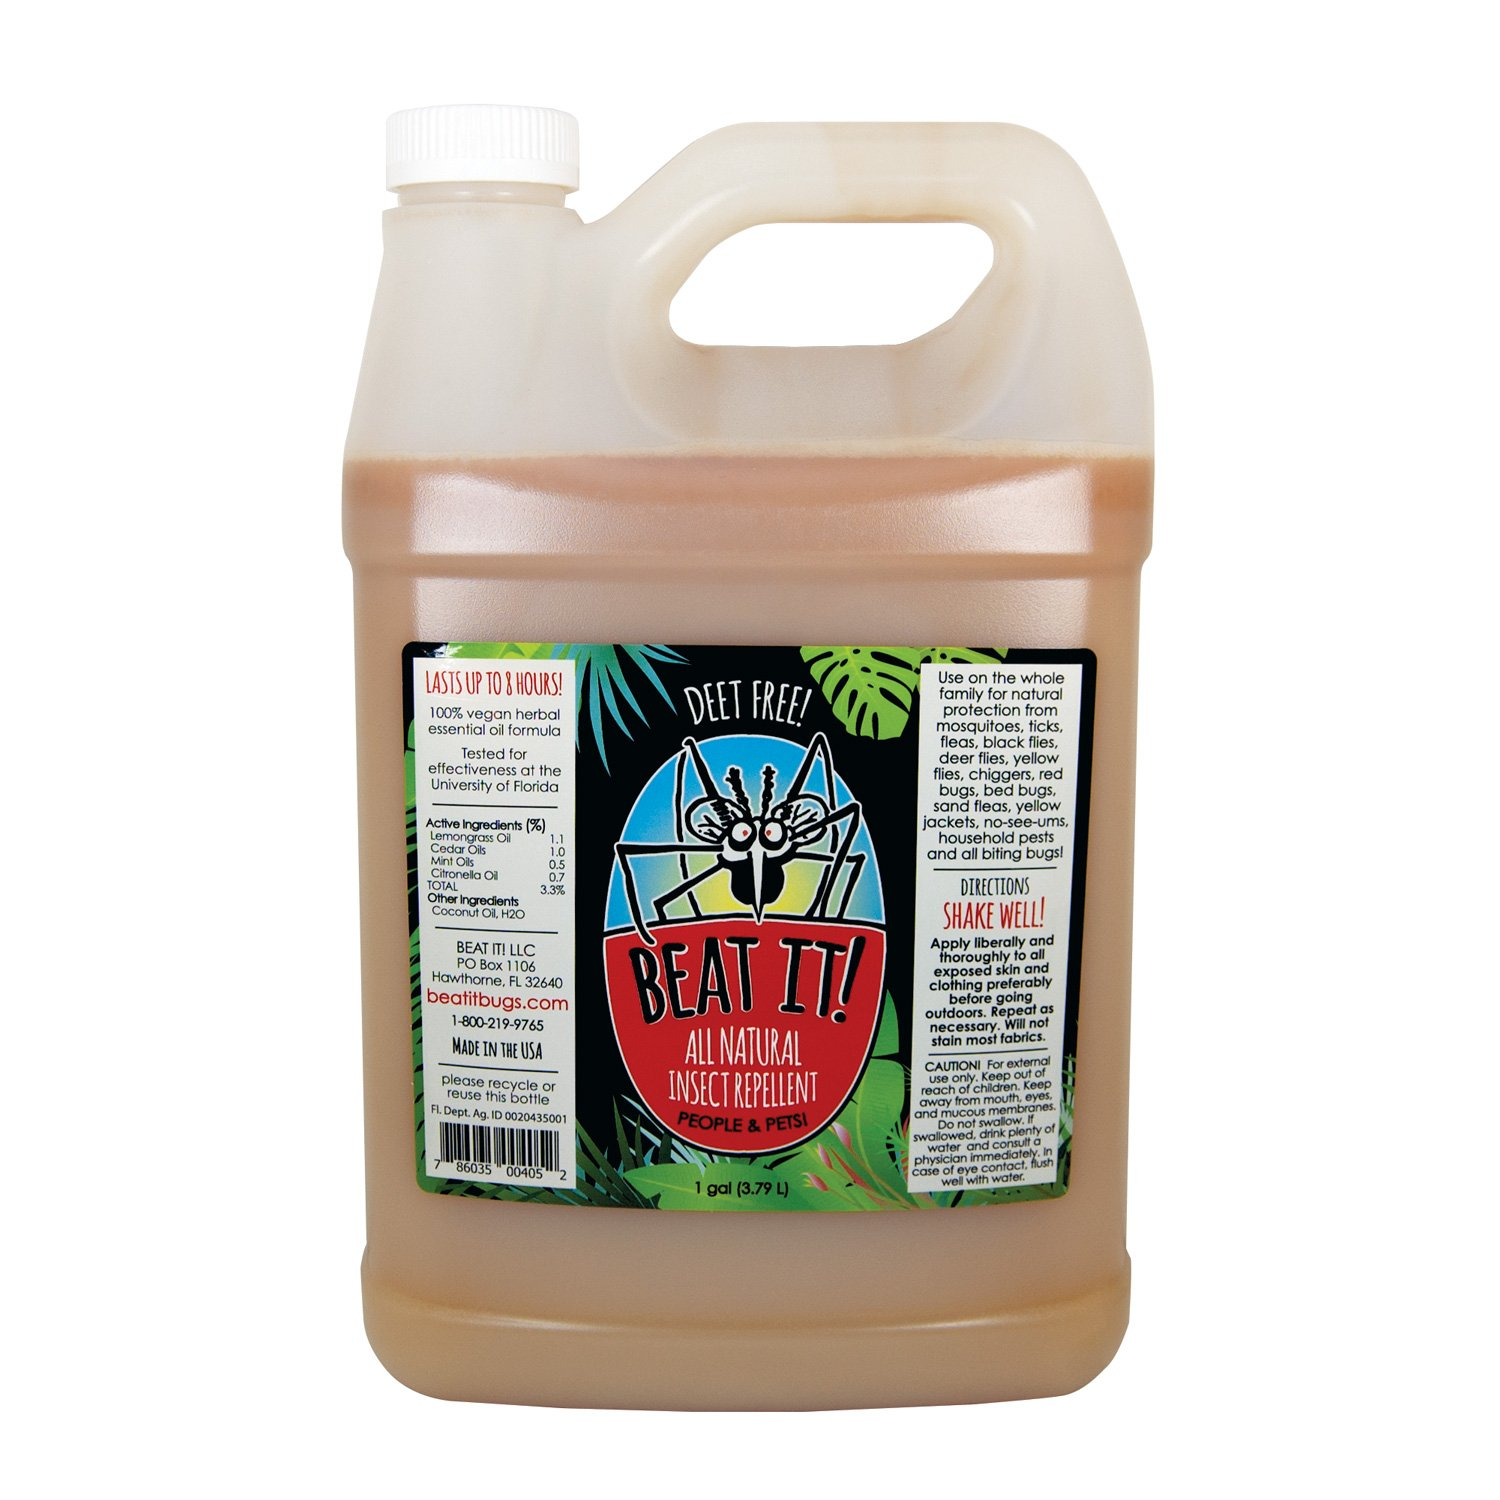 Beat IT! All Natural Deet-Free Insect Repellent (Bulk 1 Gallon)